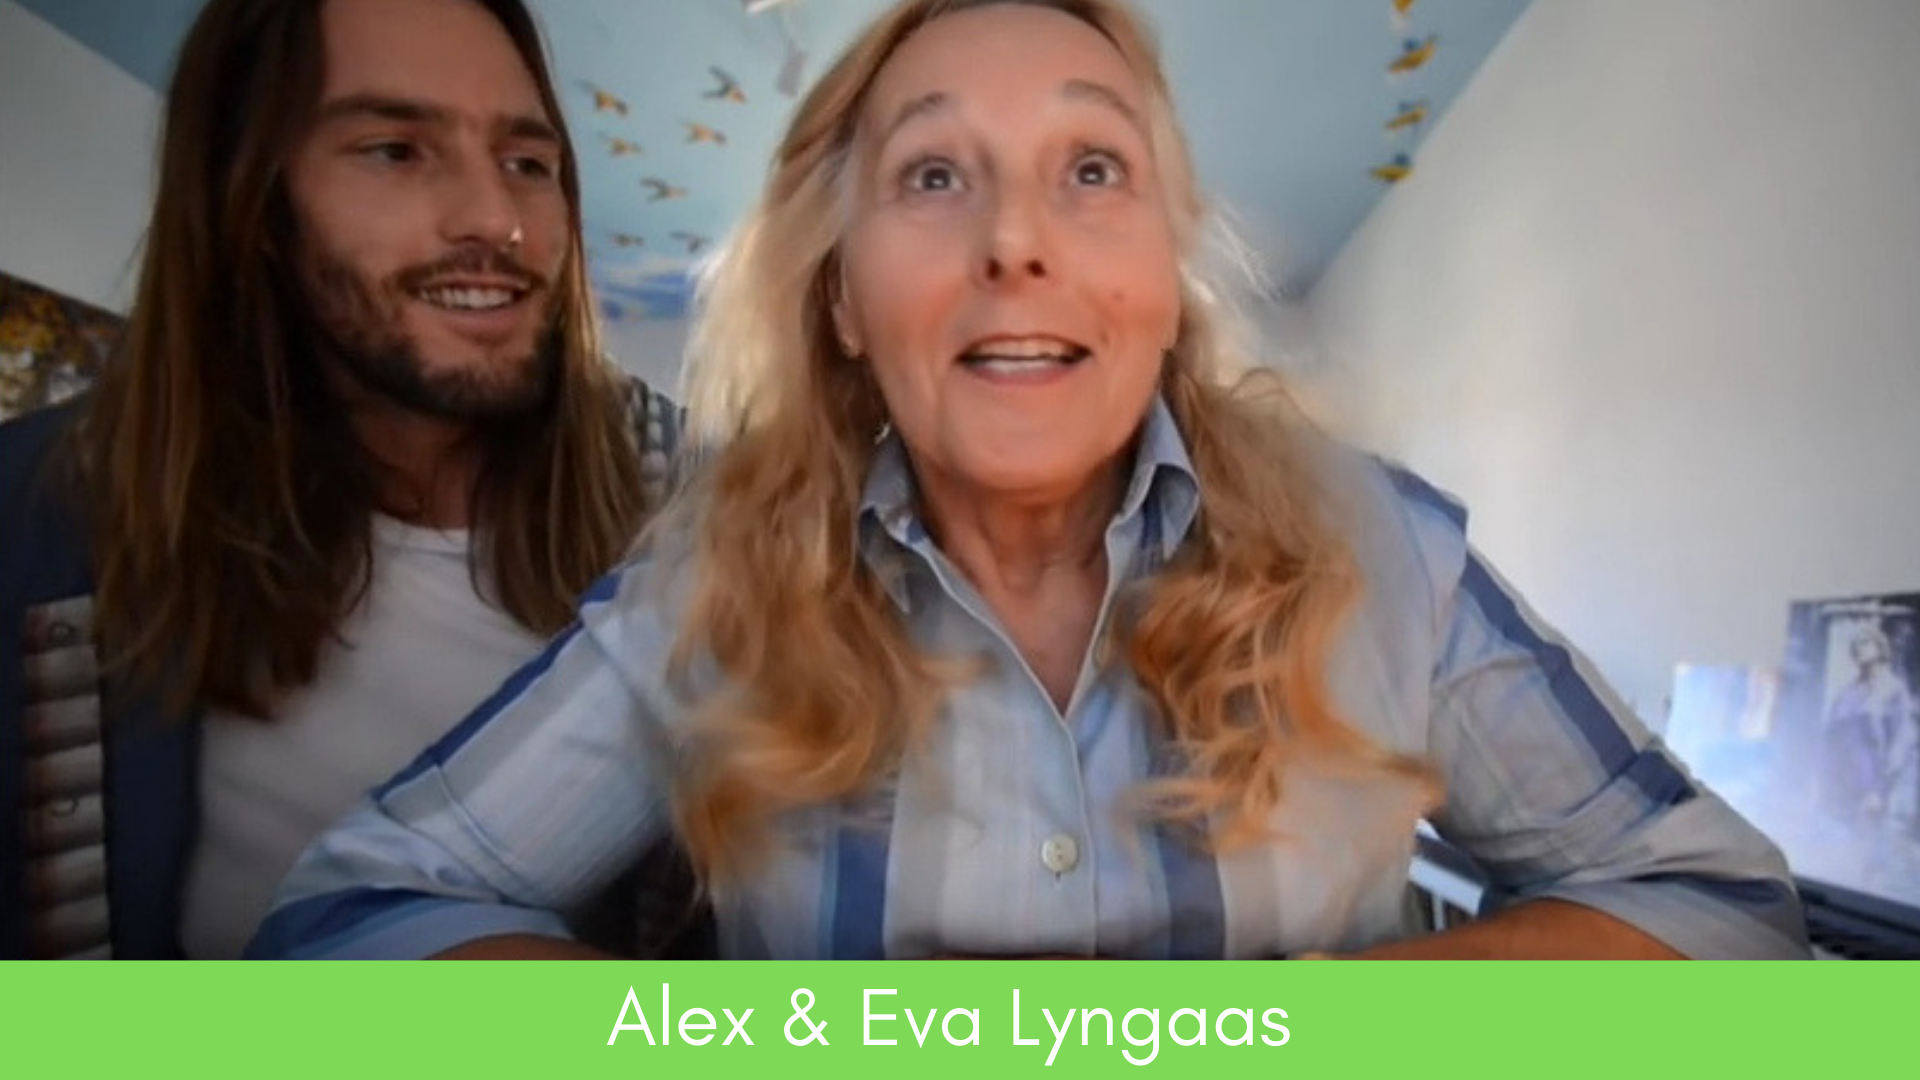 Alex Lyngaas loves his mum. He loves her so much that he wants to help her find the love of her life. Over the course of a year he had been filming her, but until last May, she had no idea why. 69-year-old Adventure Diva Eva could be any of us: a woman in act two, living life solo, with someone who cares about us wanting more for us. Take a peek at the moment Eva discovers what her son has been up to, then c'mon back here and weigh in! What would YOU do if you were Eva? Would you embrace the unconventional adventure that someone who cared about you set you on? C'mon over and join us at the kitchen table, and share your thoughts!